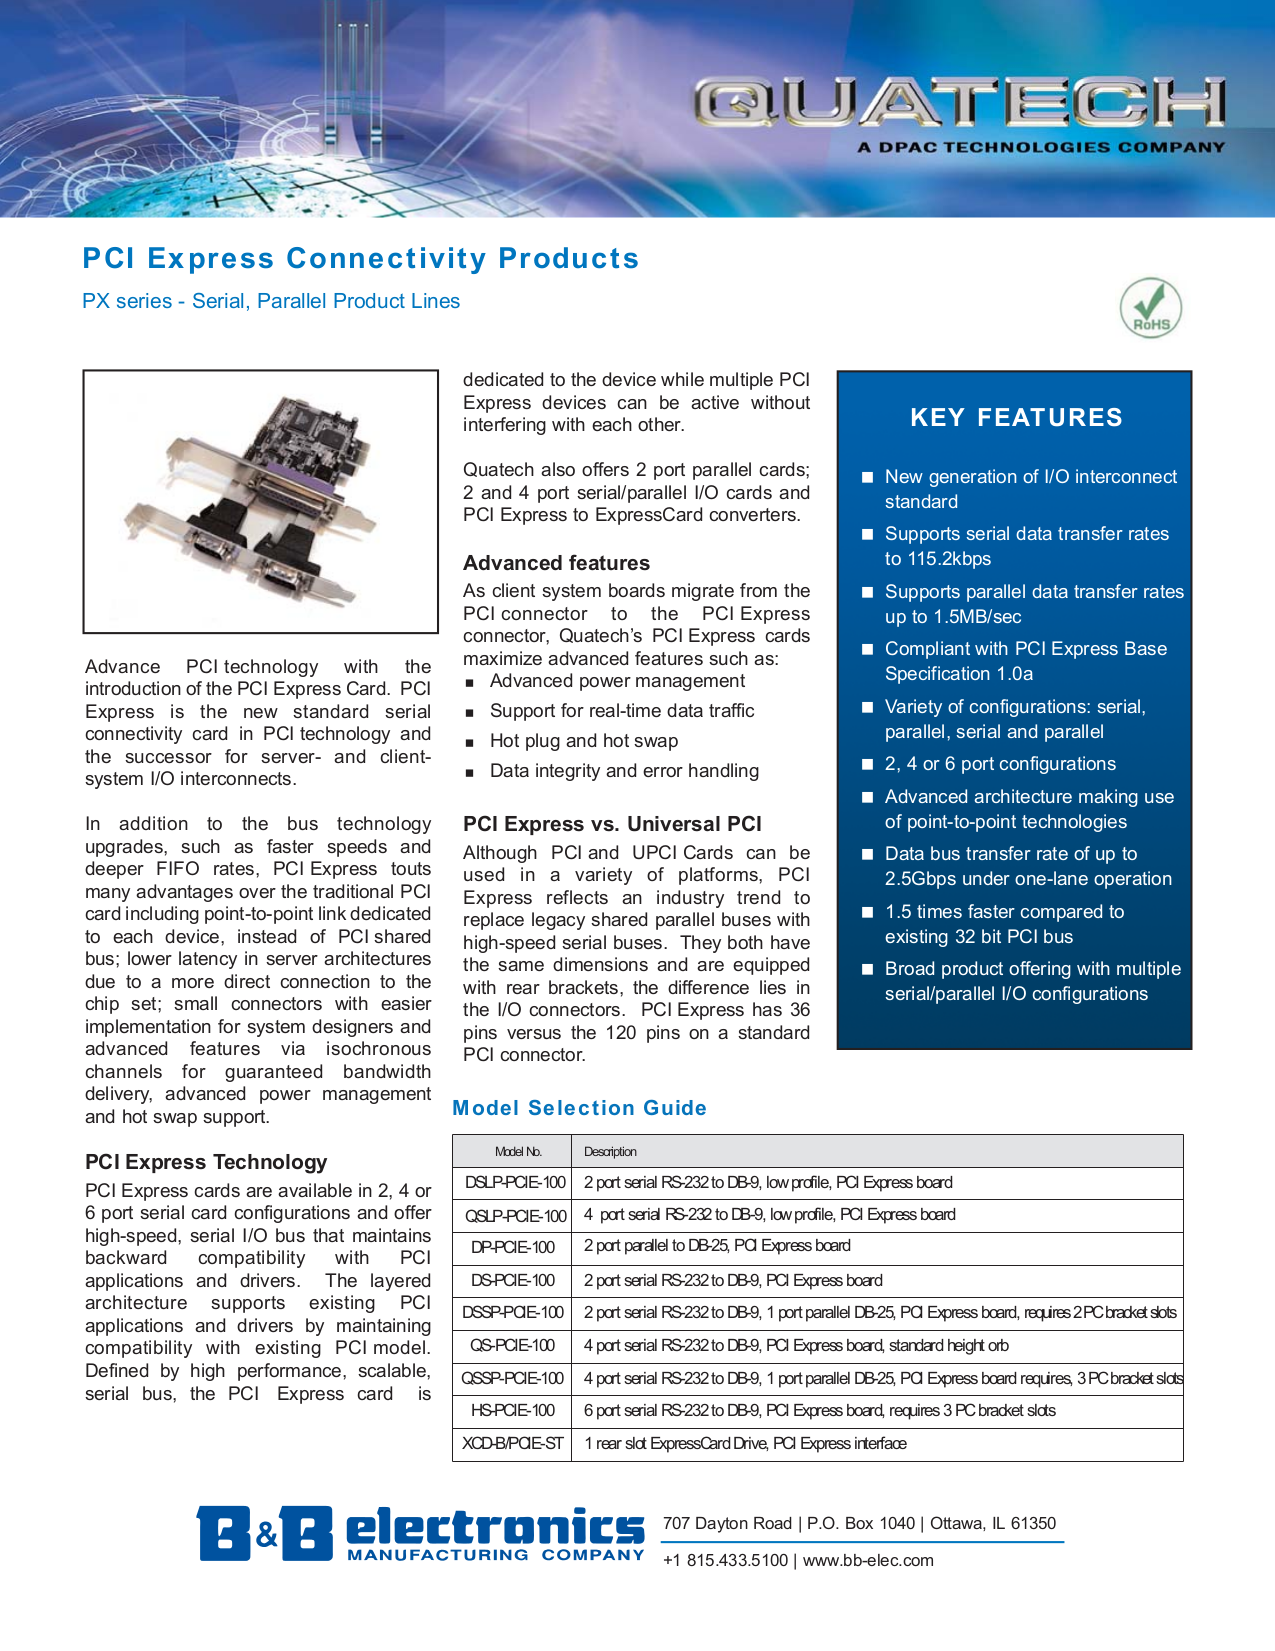 pdf for Quatech Other QSLP-PCIE-100 PCI Express Devices manual